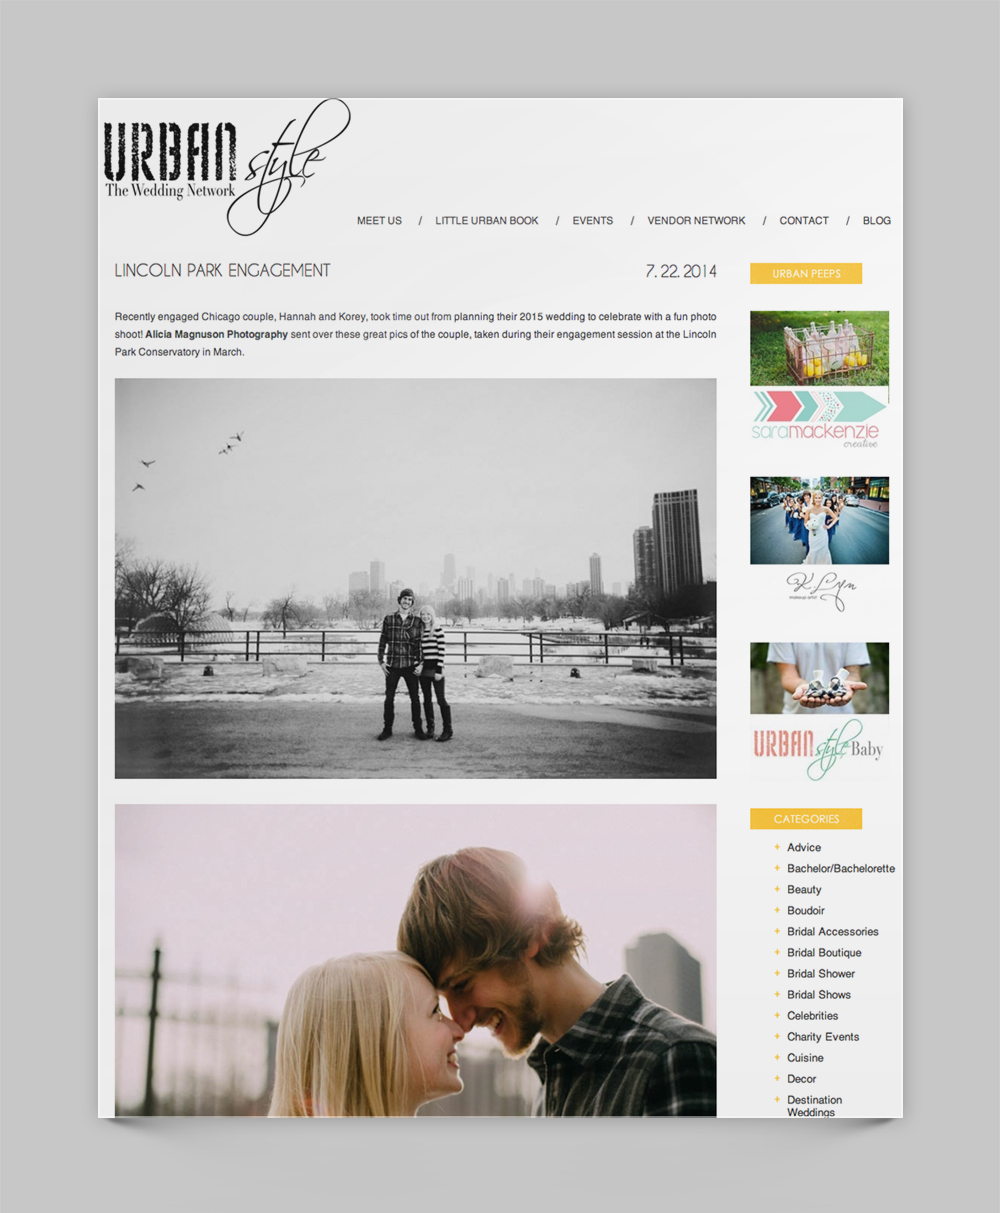 urban-style-july-2014-feature